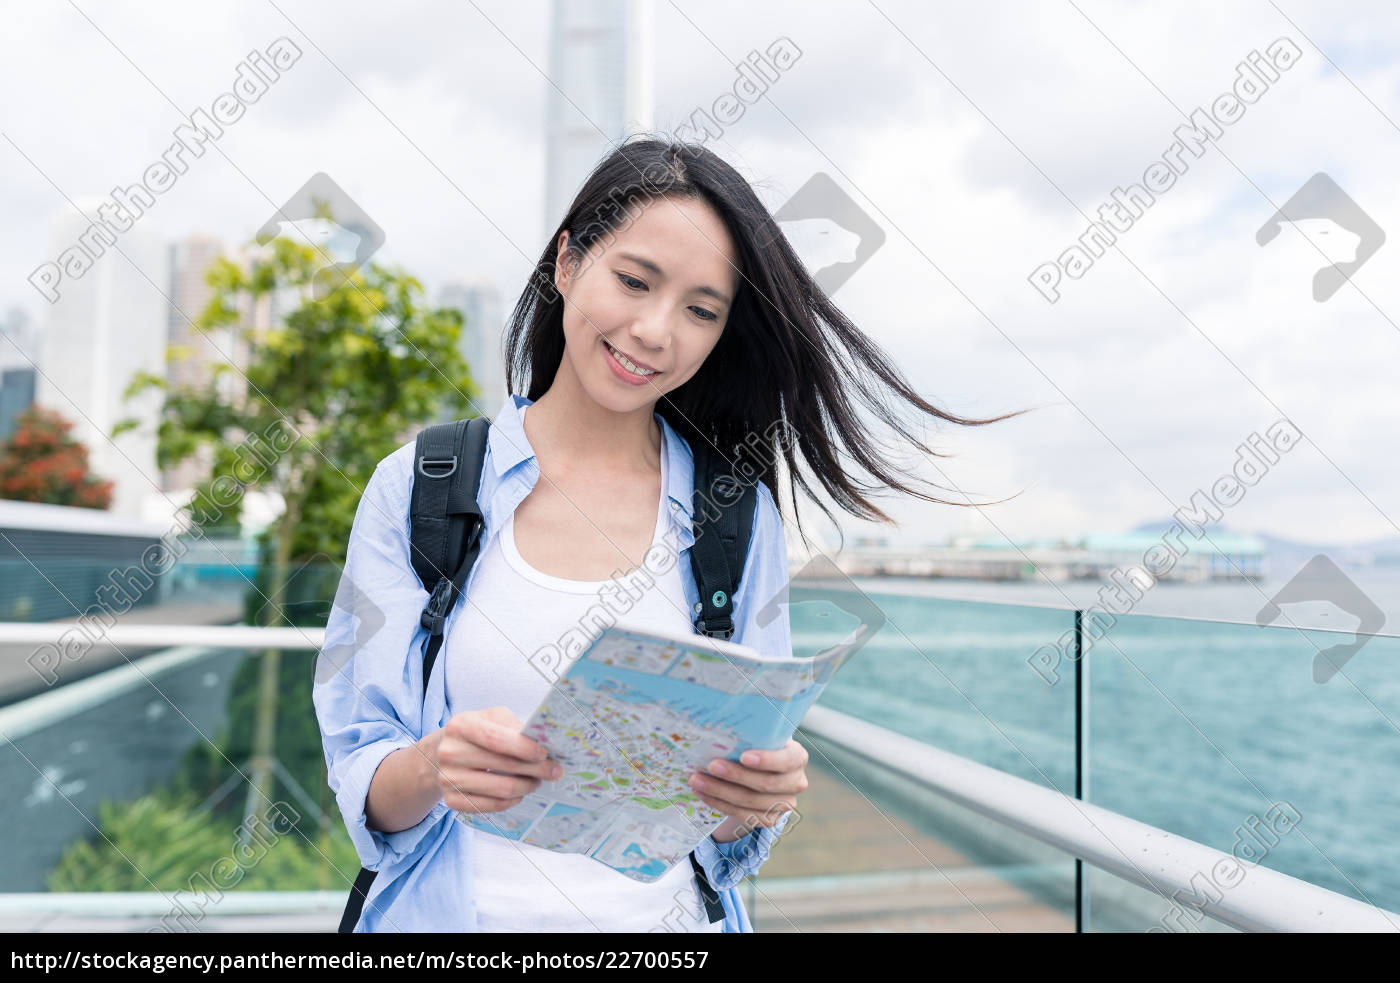 woman, use, of, city, map, in - 22700557